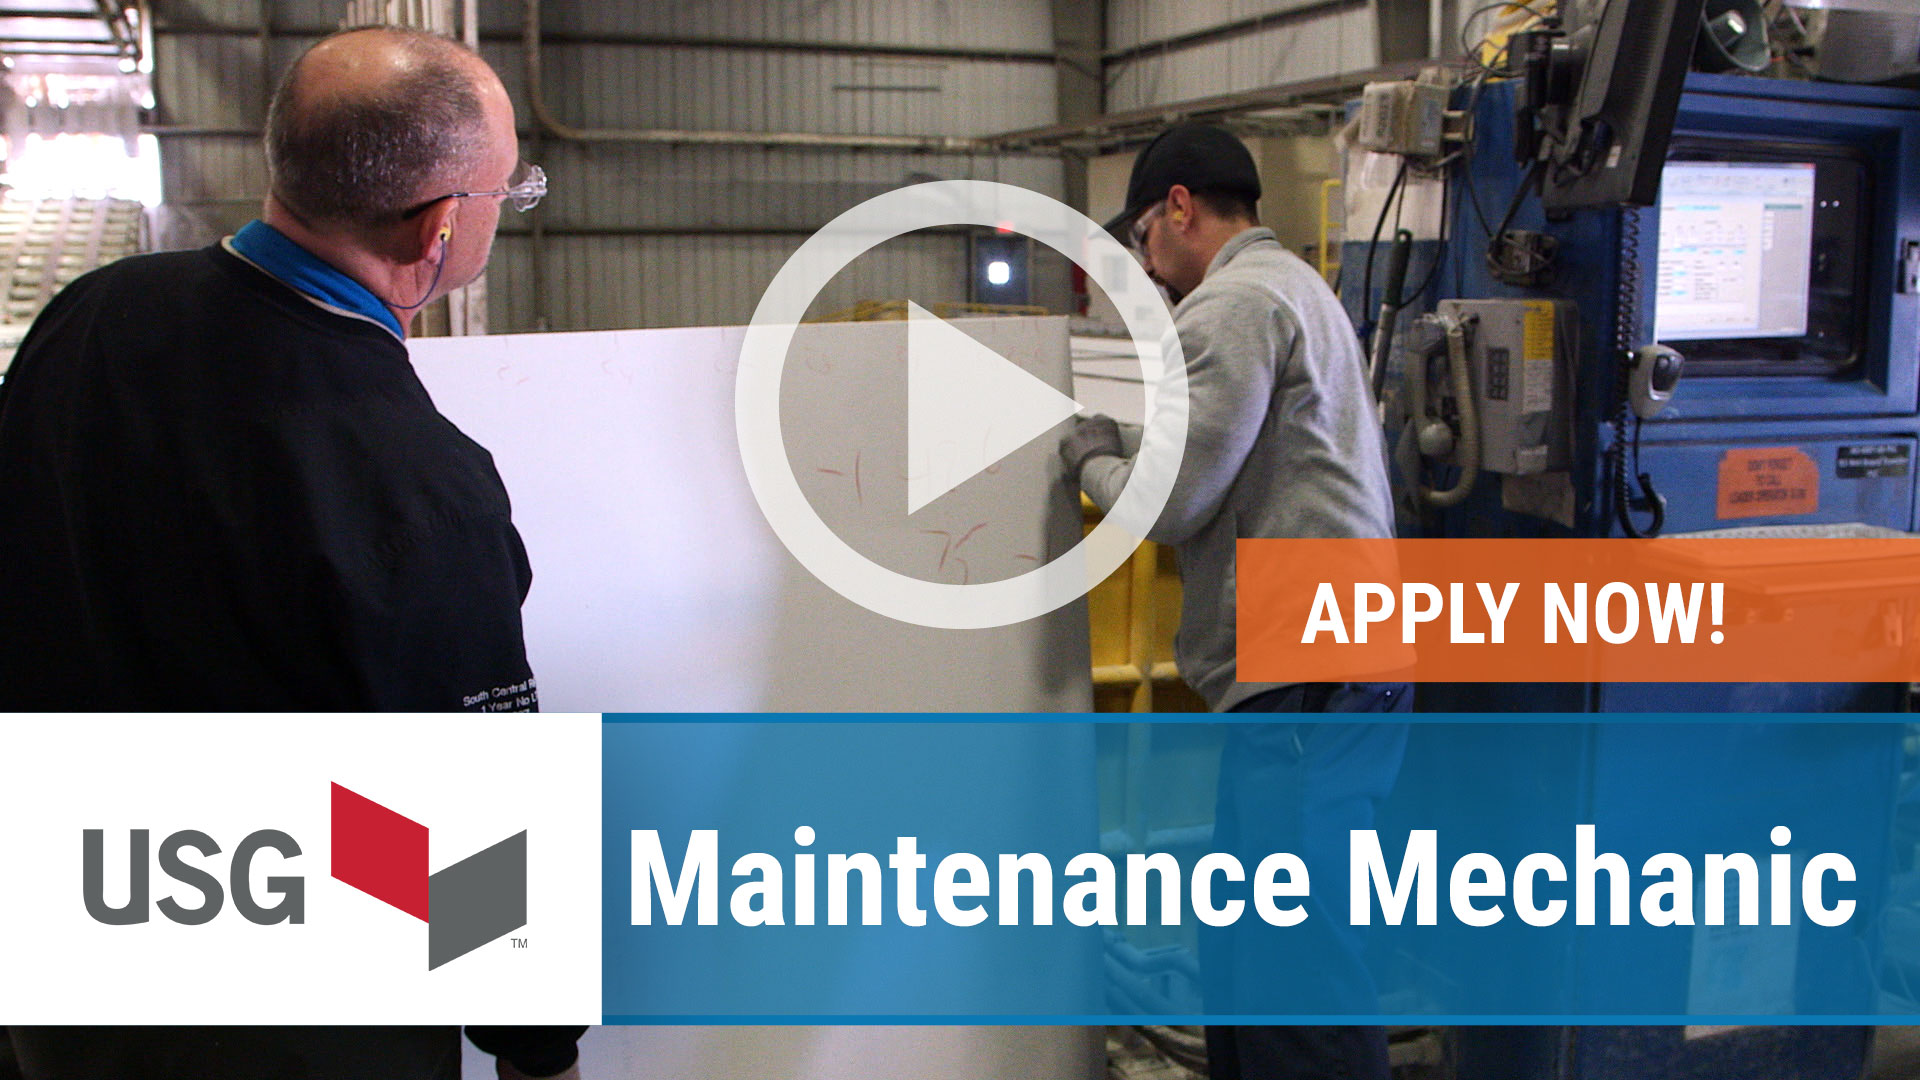 Watch our careers video for available job opening Maintenance Mechanic in Mediapolis, IA, USA